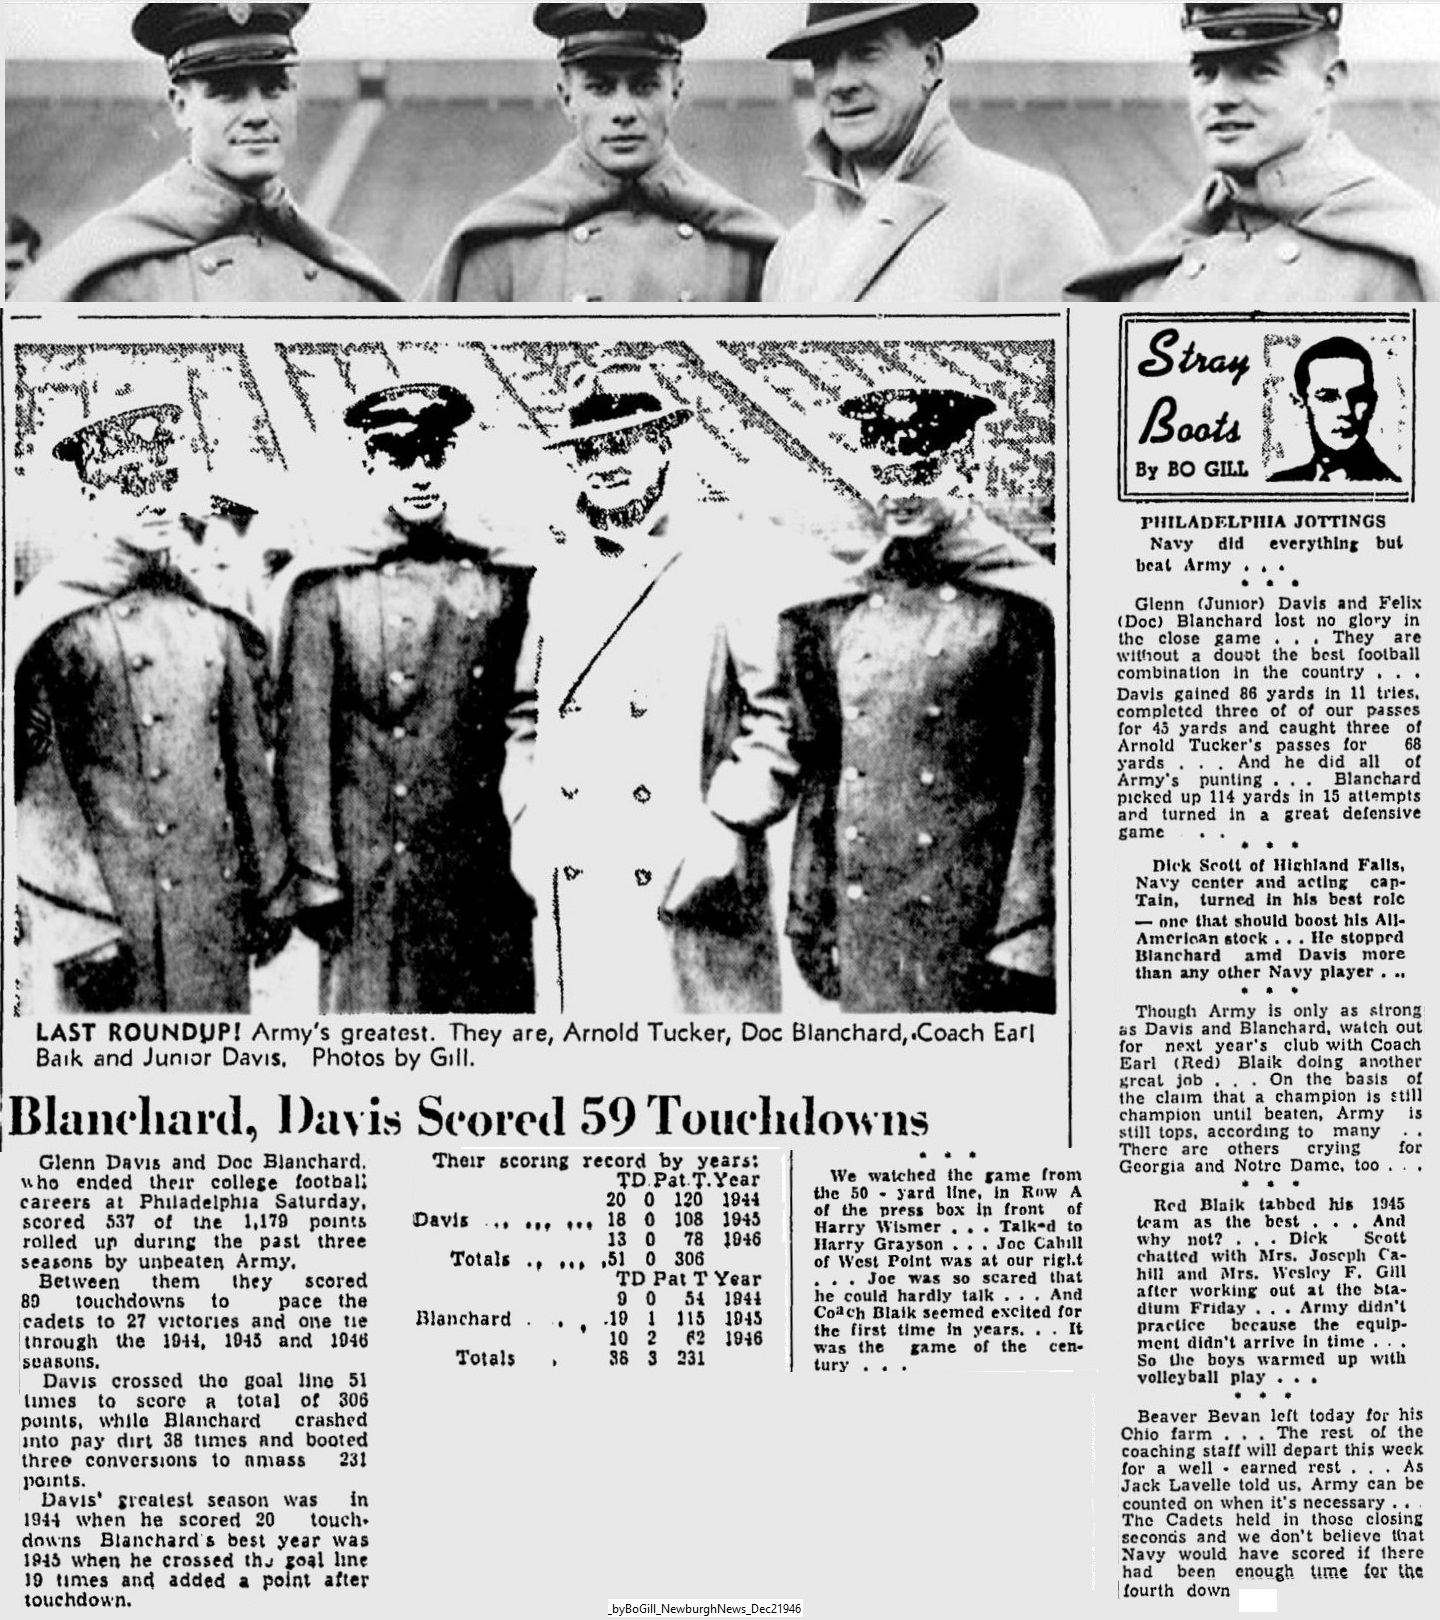 ArmyFB_1946_vsNavy_byBoGill_NewburghNews_Dec21946